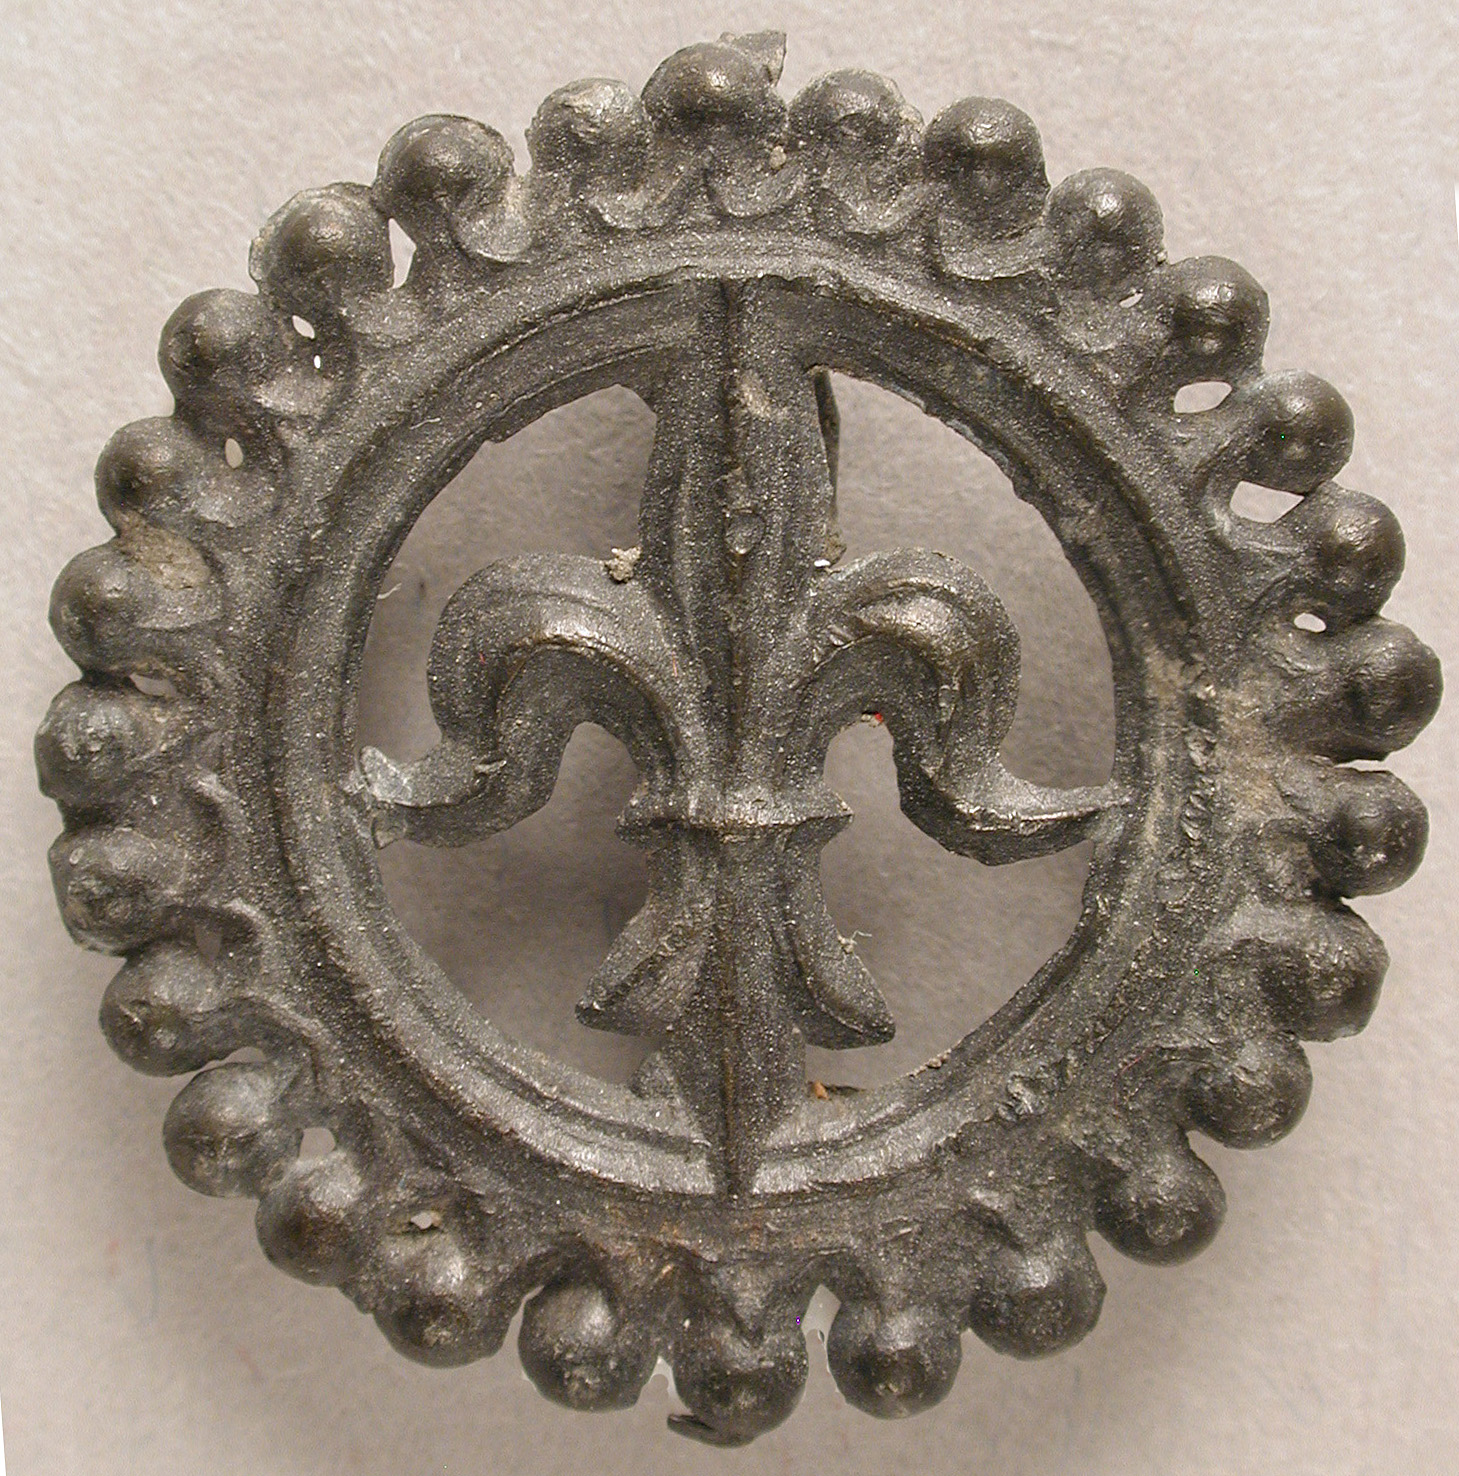 Badge with Lily of Purity, 14th-15th century, tin/lead alloy. Collection of the Metropolitan Museum of Art.